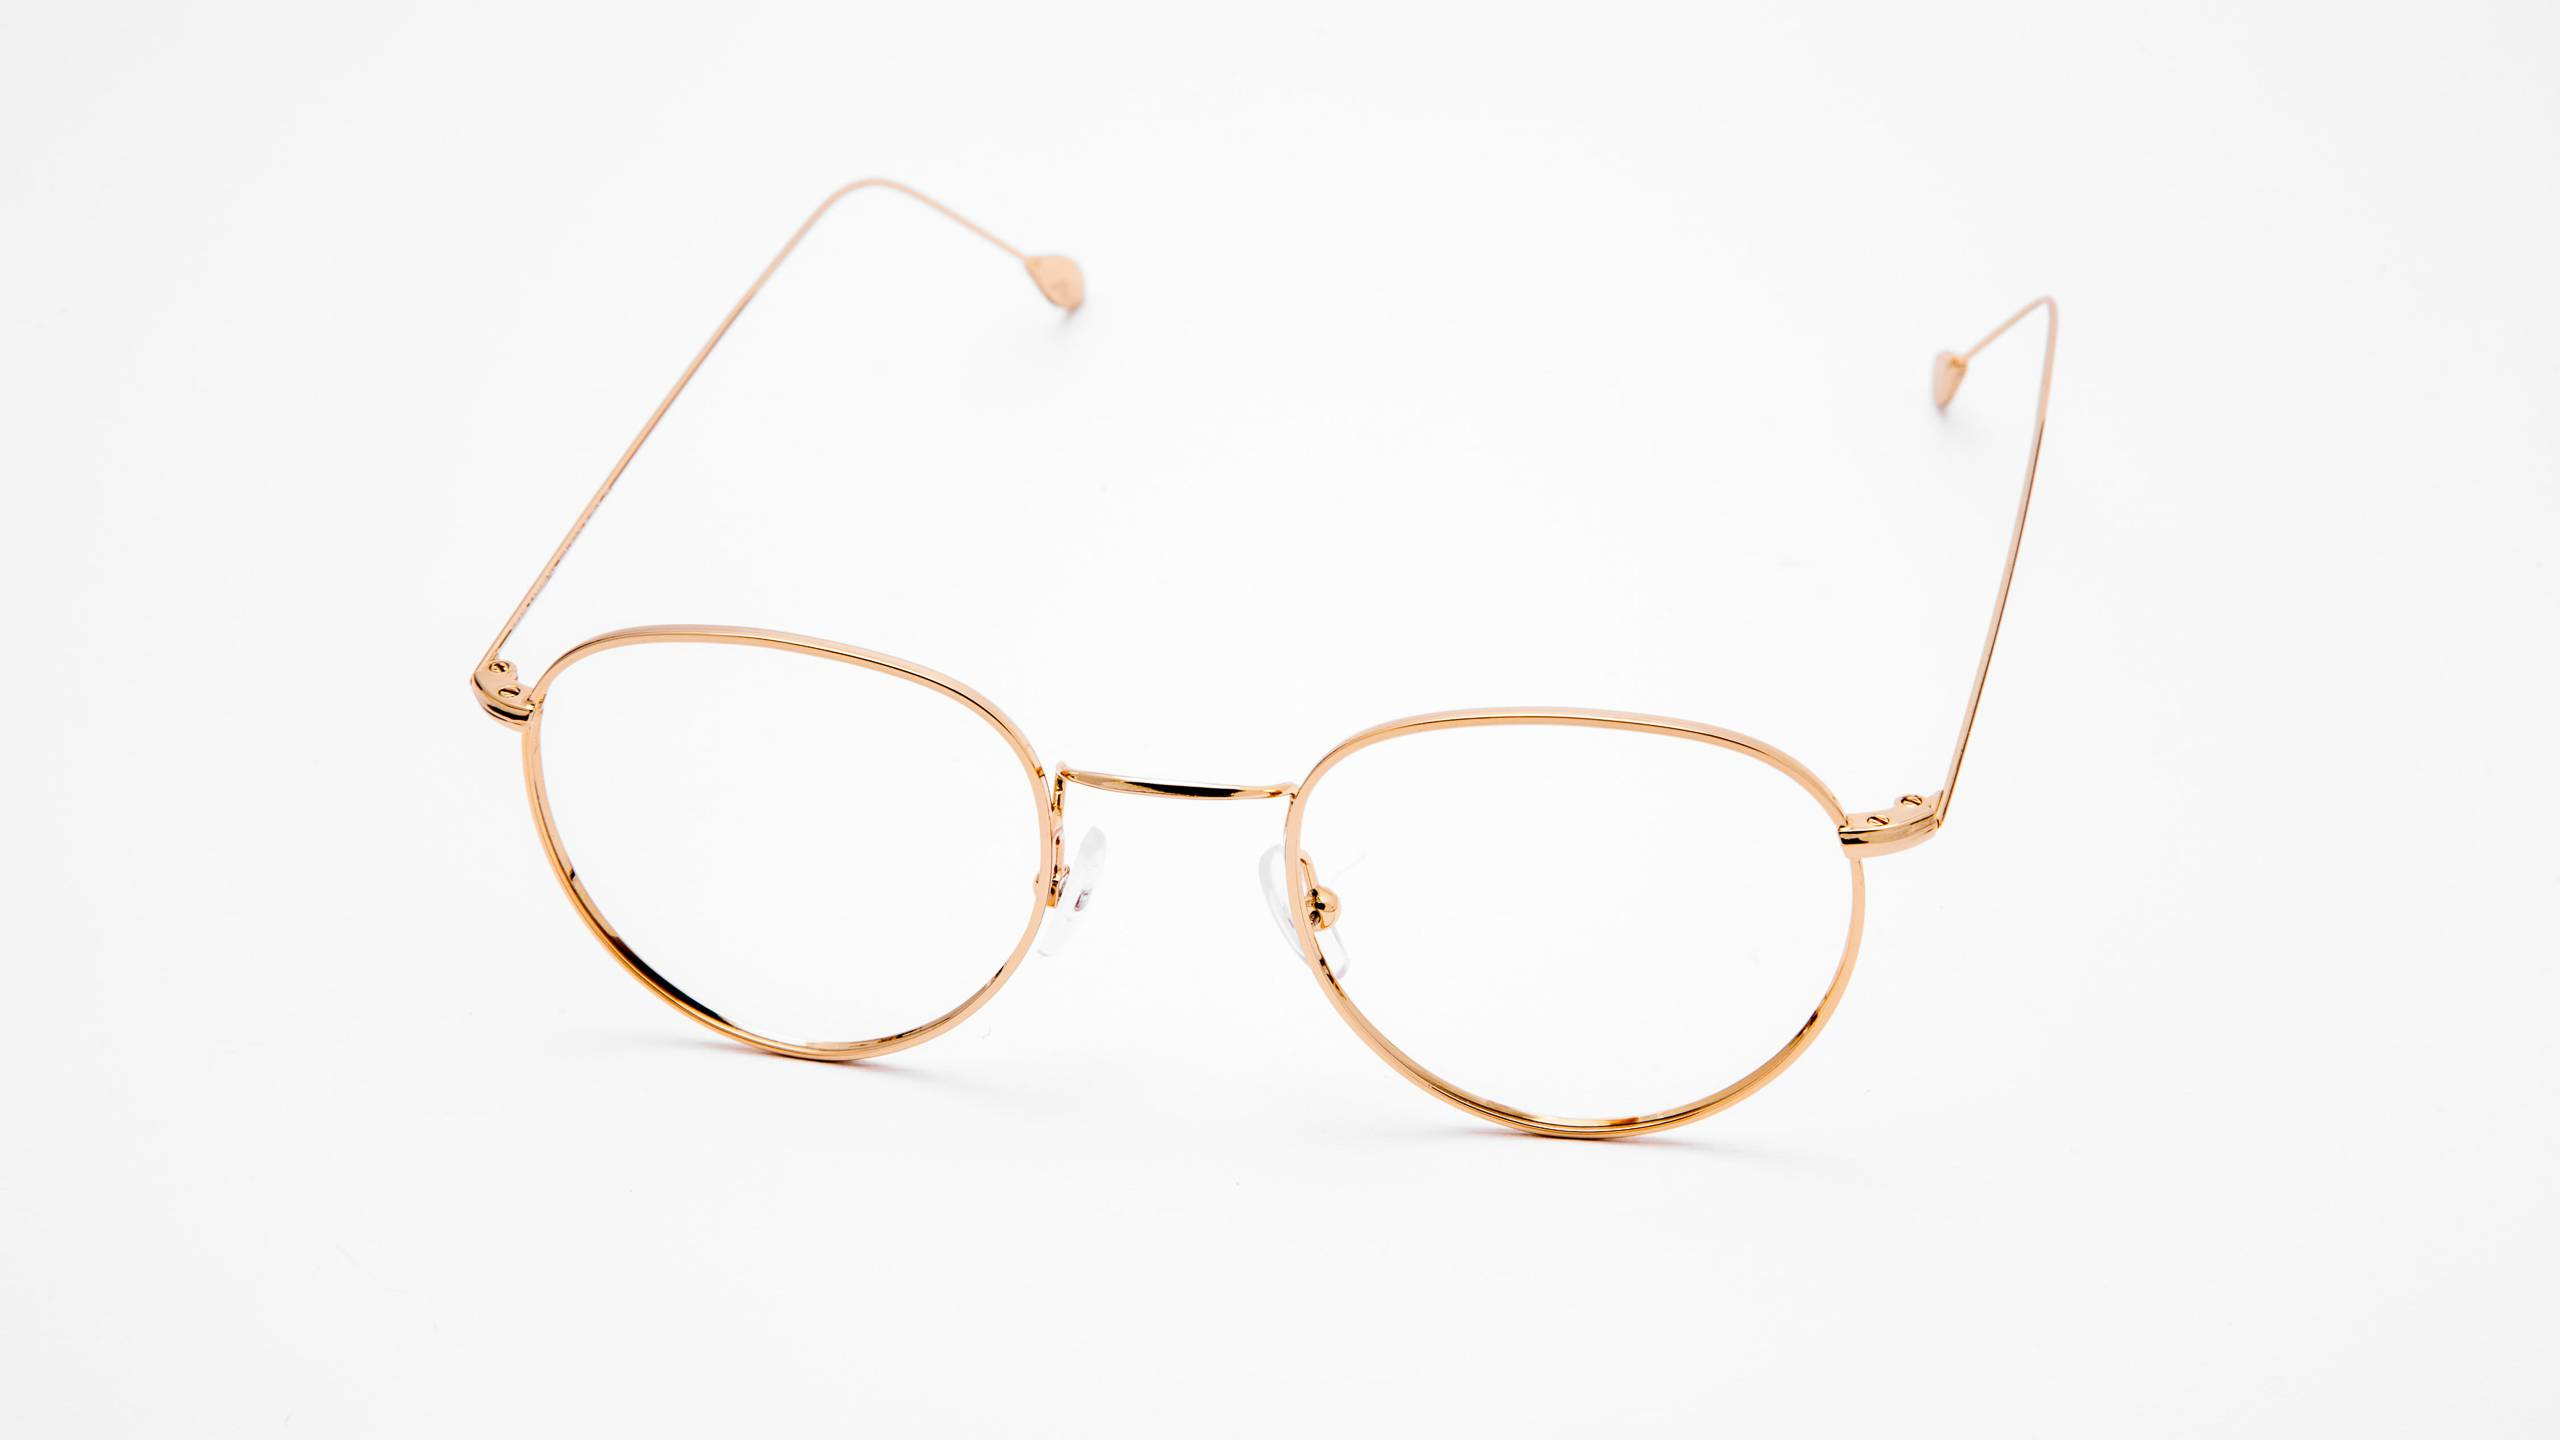 eyeglasses-Nathan-Kaltermann-made-in-Italy-PALMAROLA-ORO-UNISEX-VISTA2